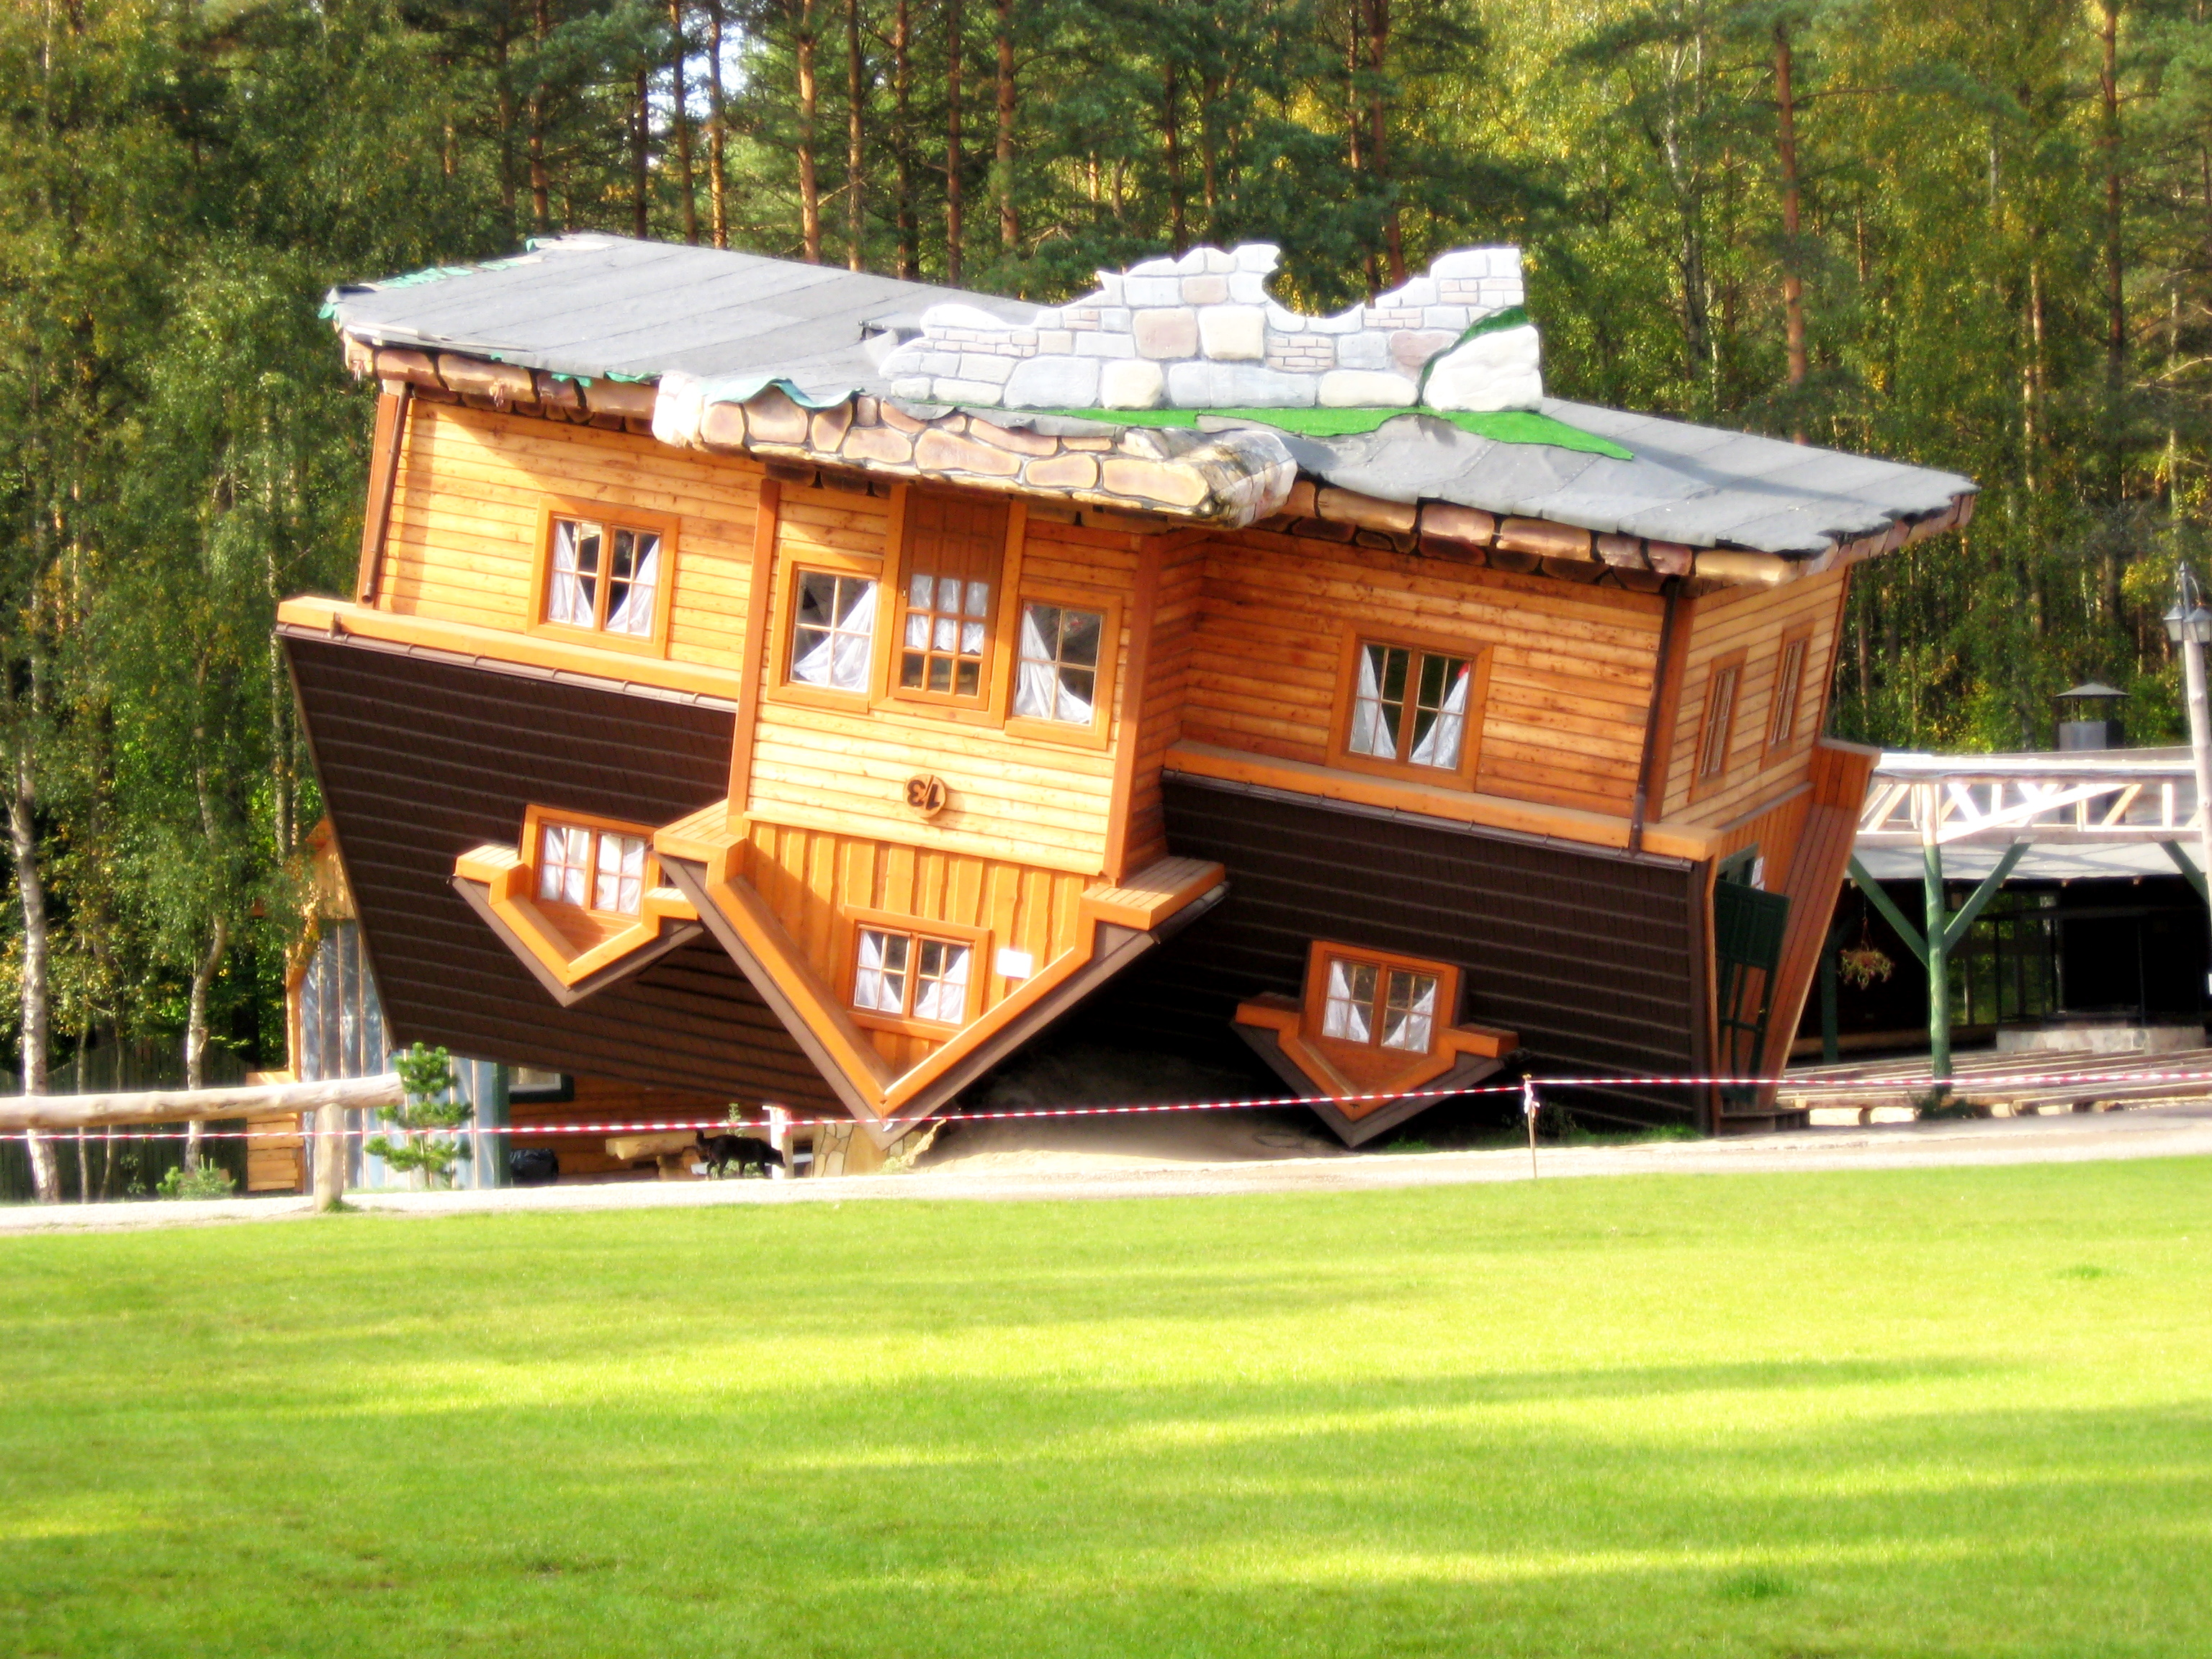 File An 39 Upside Down House 39 In Open Air Museum Szybmark: the upside house